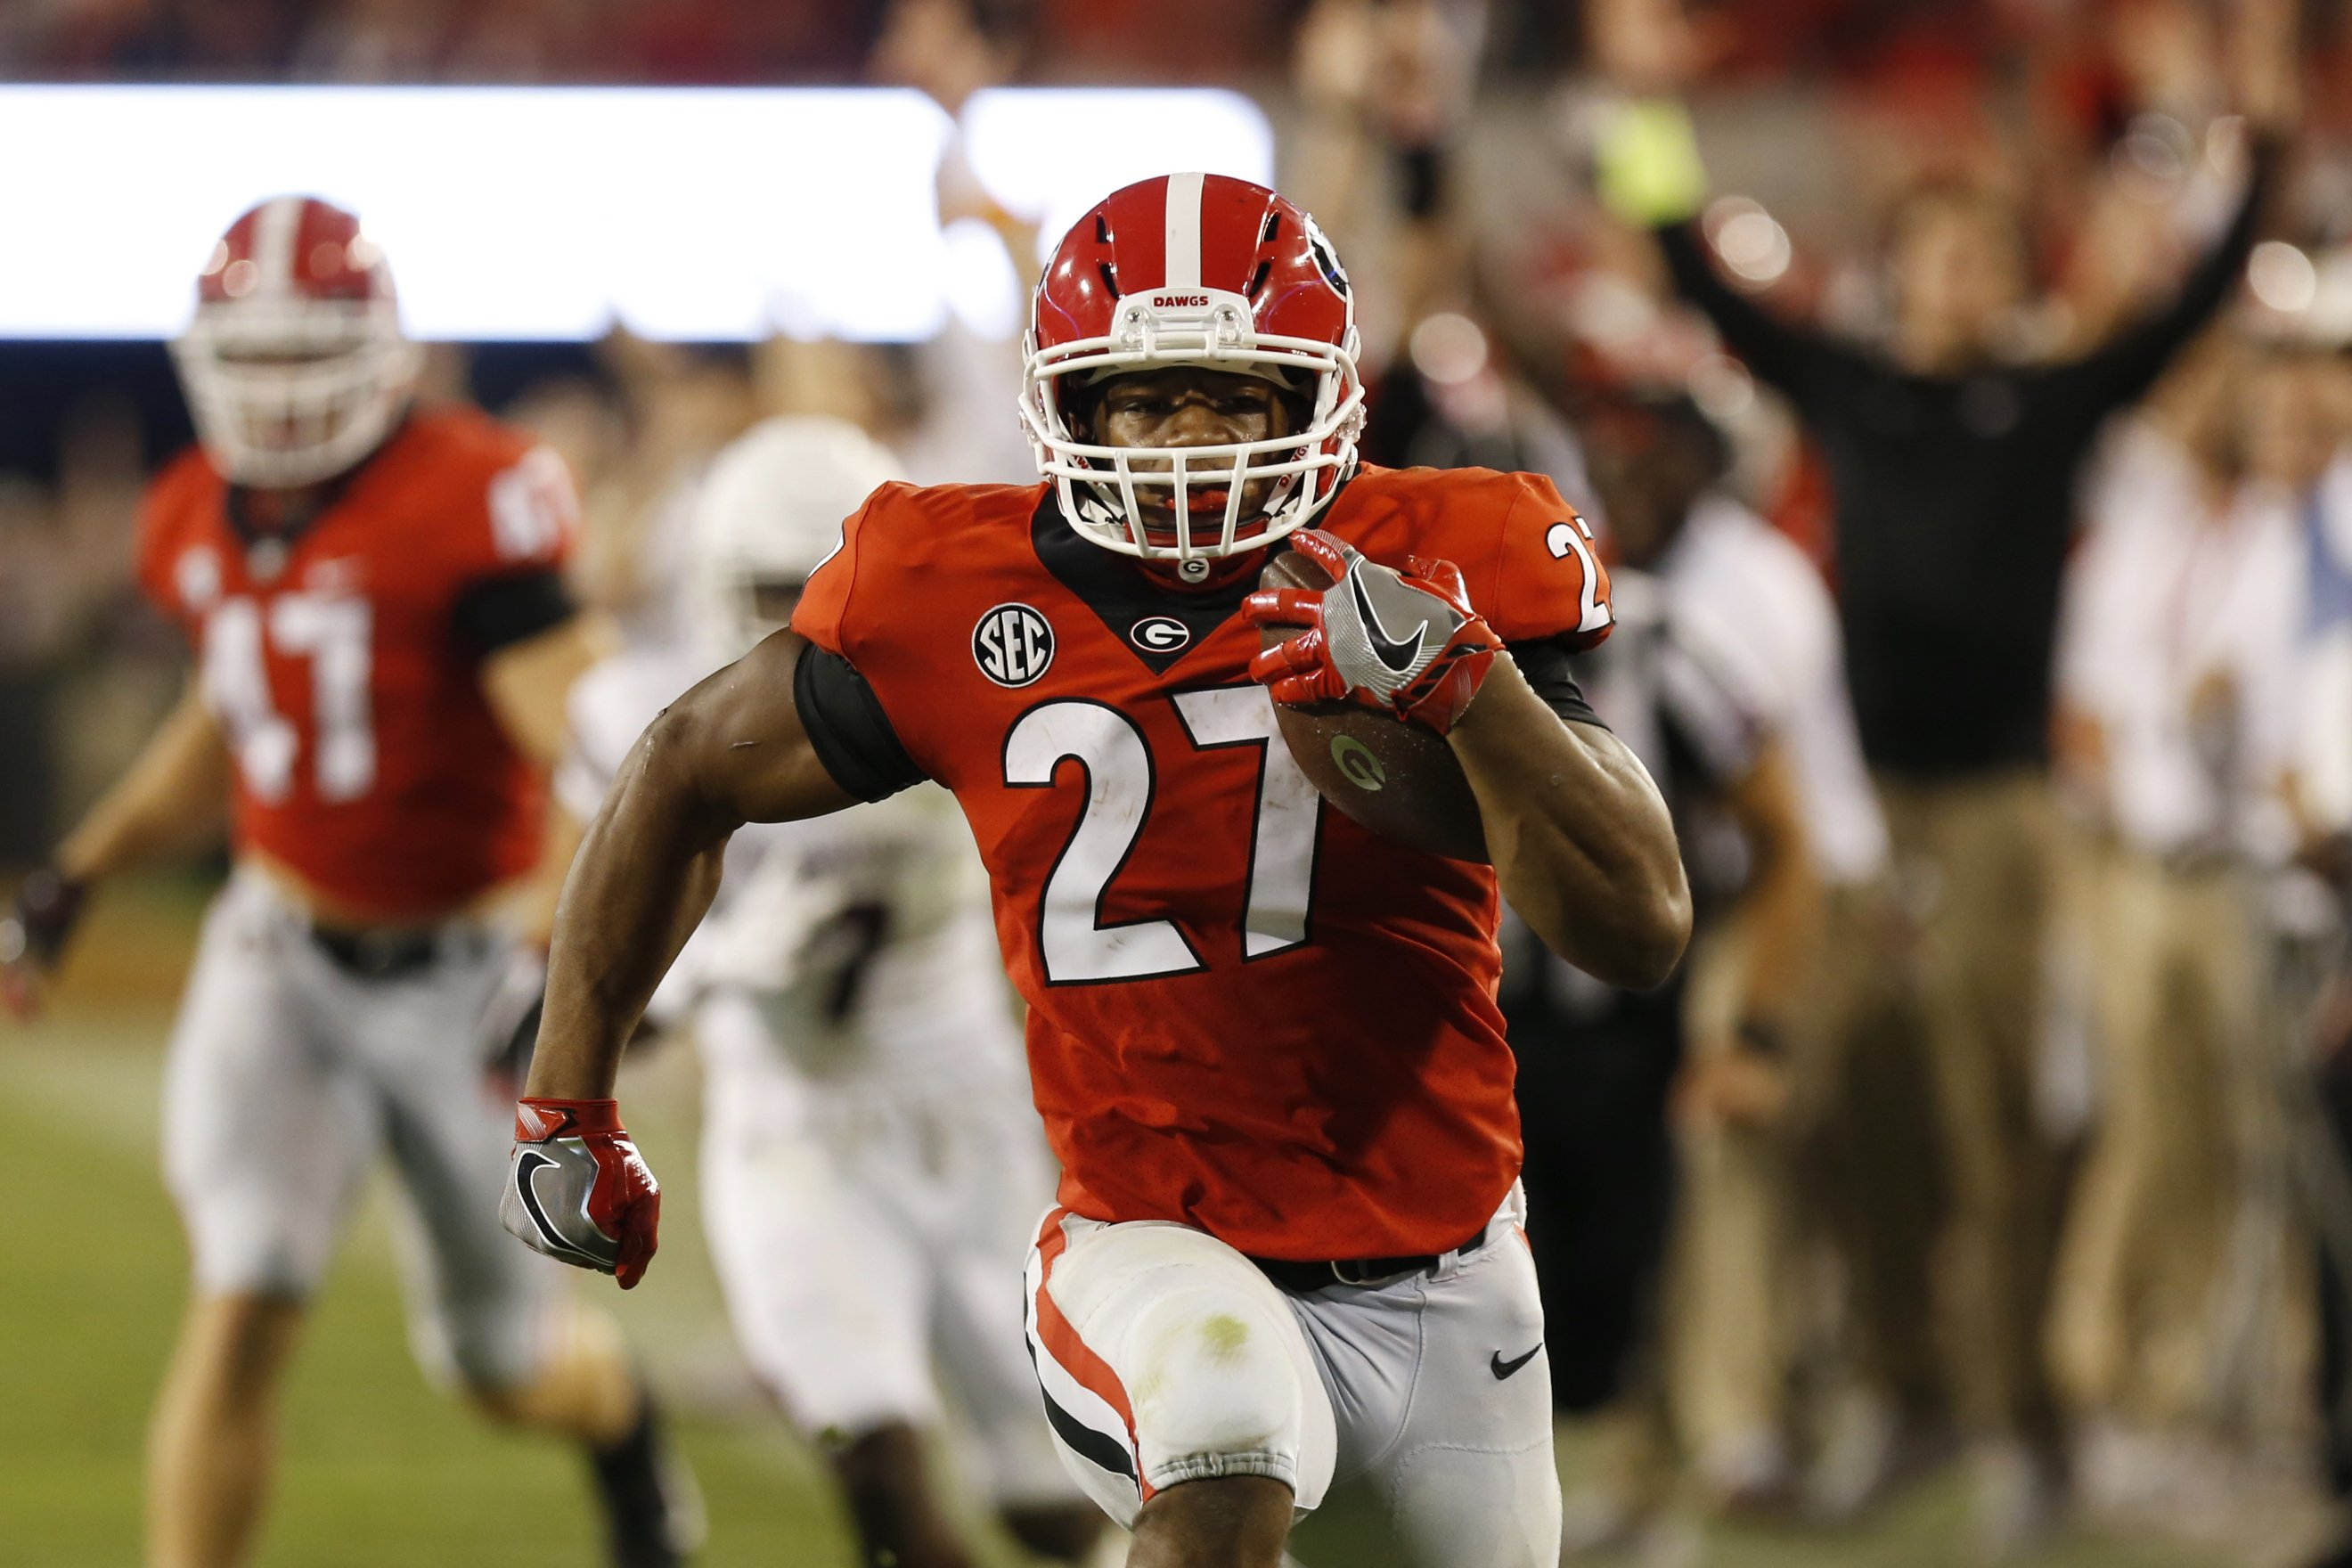 Sec Powers Piling Up Wins If Not Heisman Worthy Stats